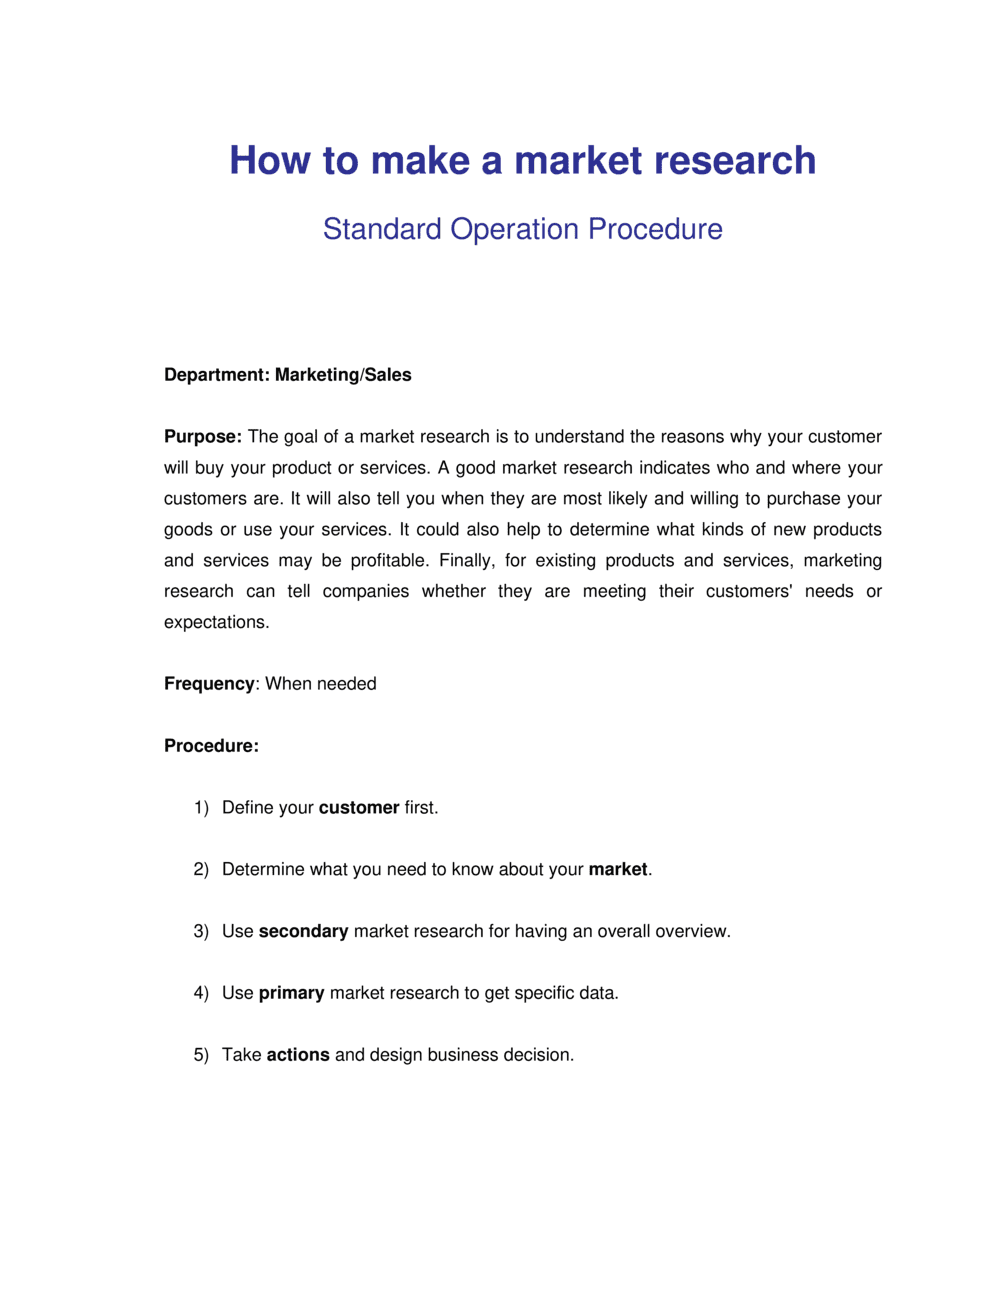 Business-in-a-Box's How to Make a Market Research Template